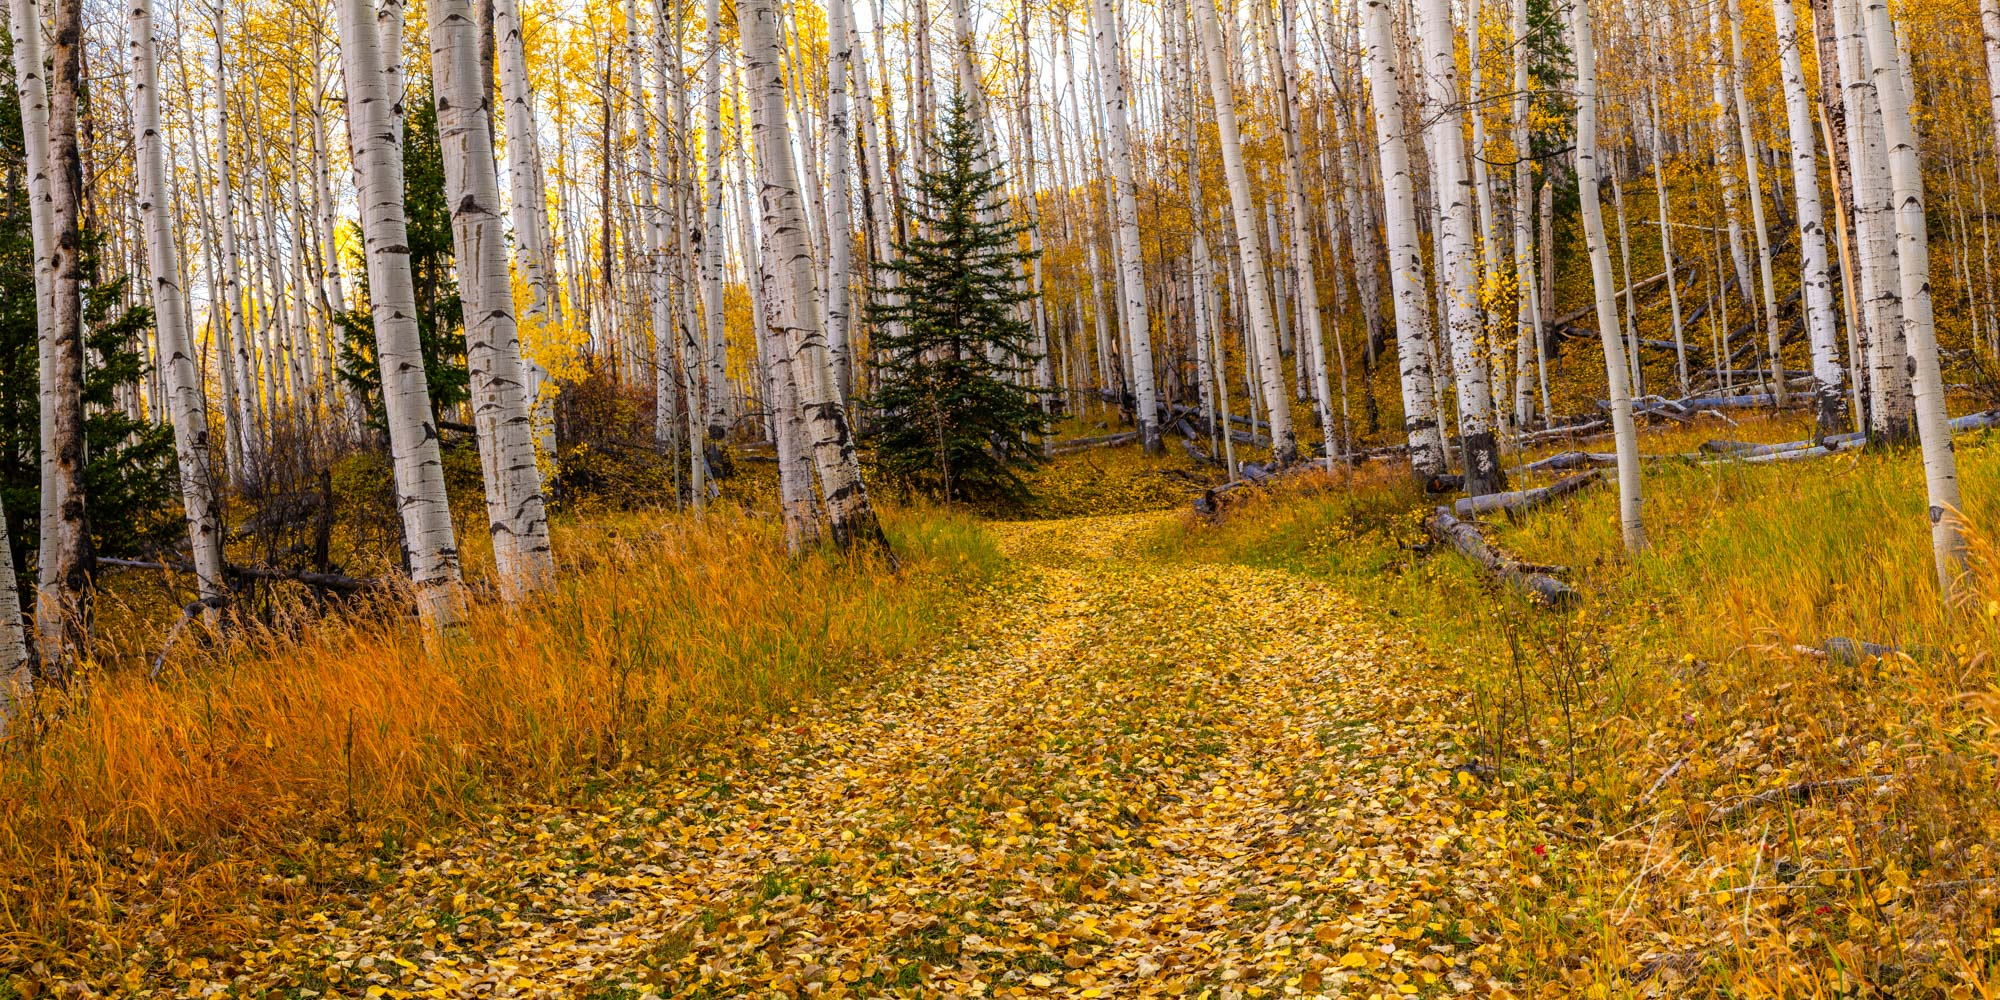 A Colorado Fall Color Photography Print of an Aspen Lined Road taken during the peak of Autumn Tree Color in southeast Colorado...